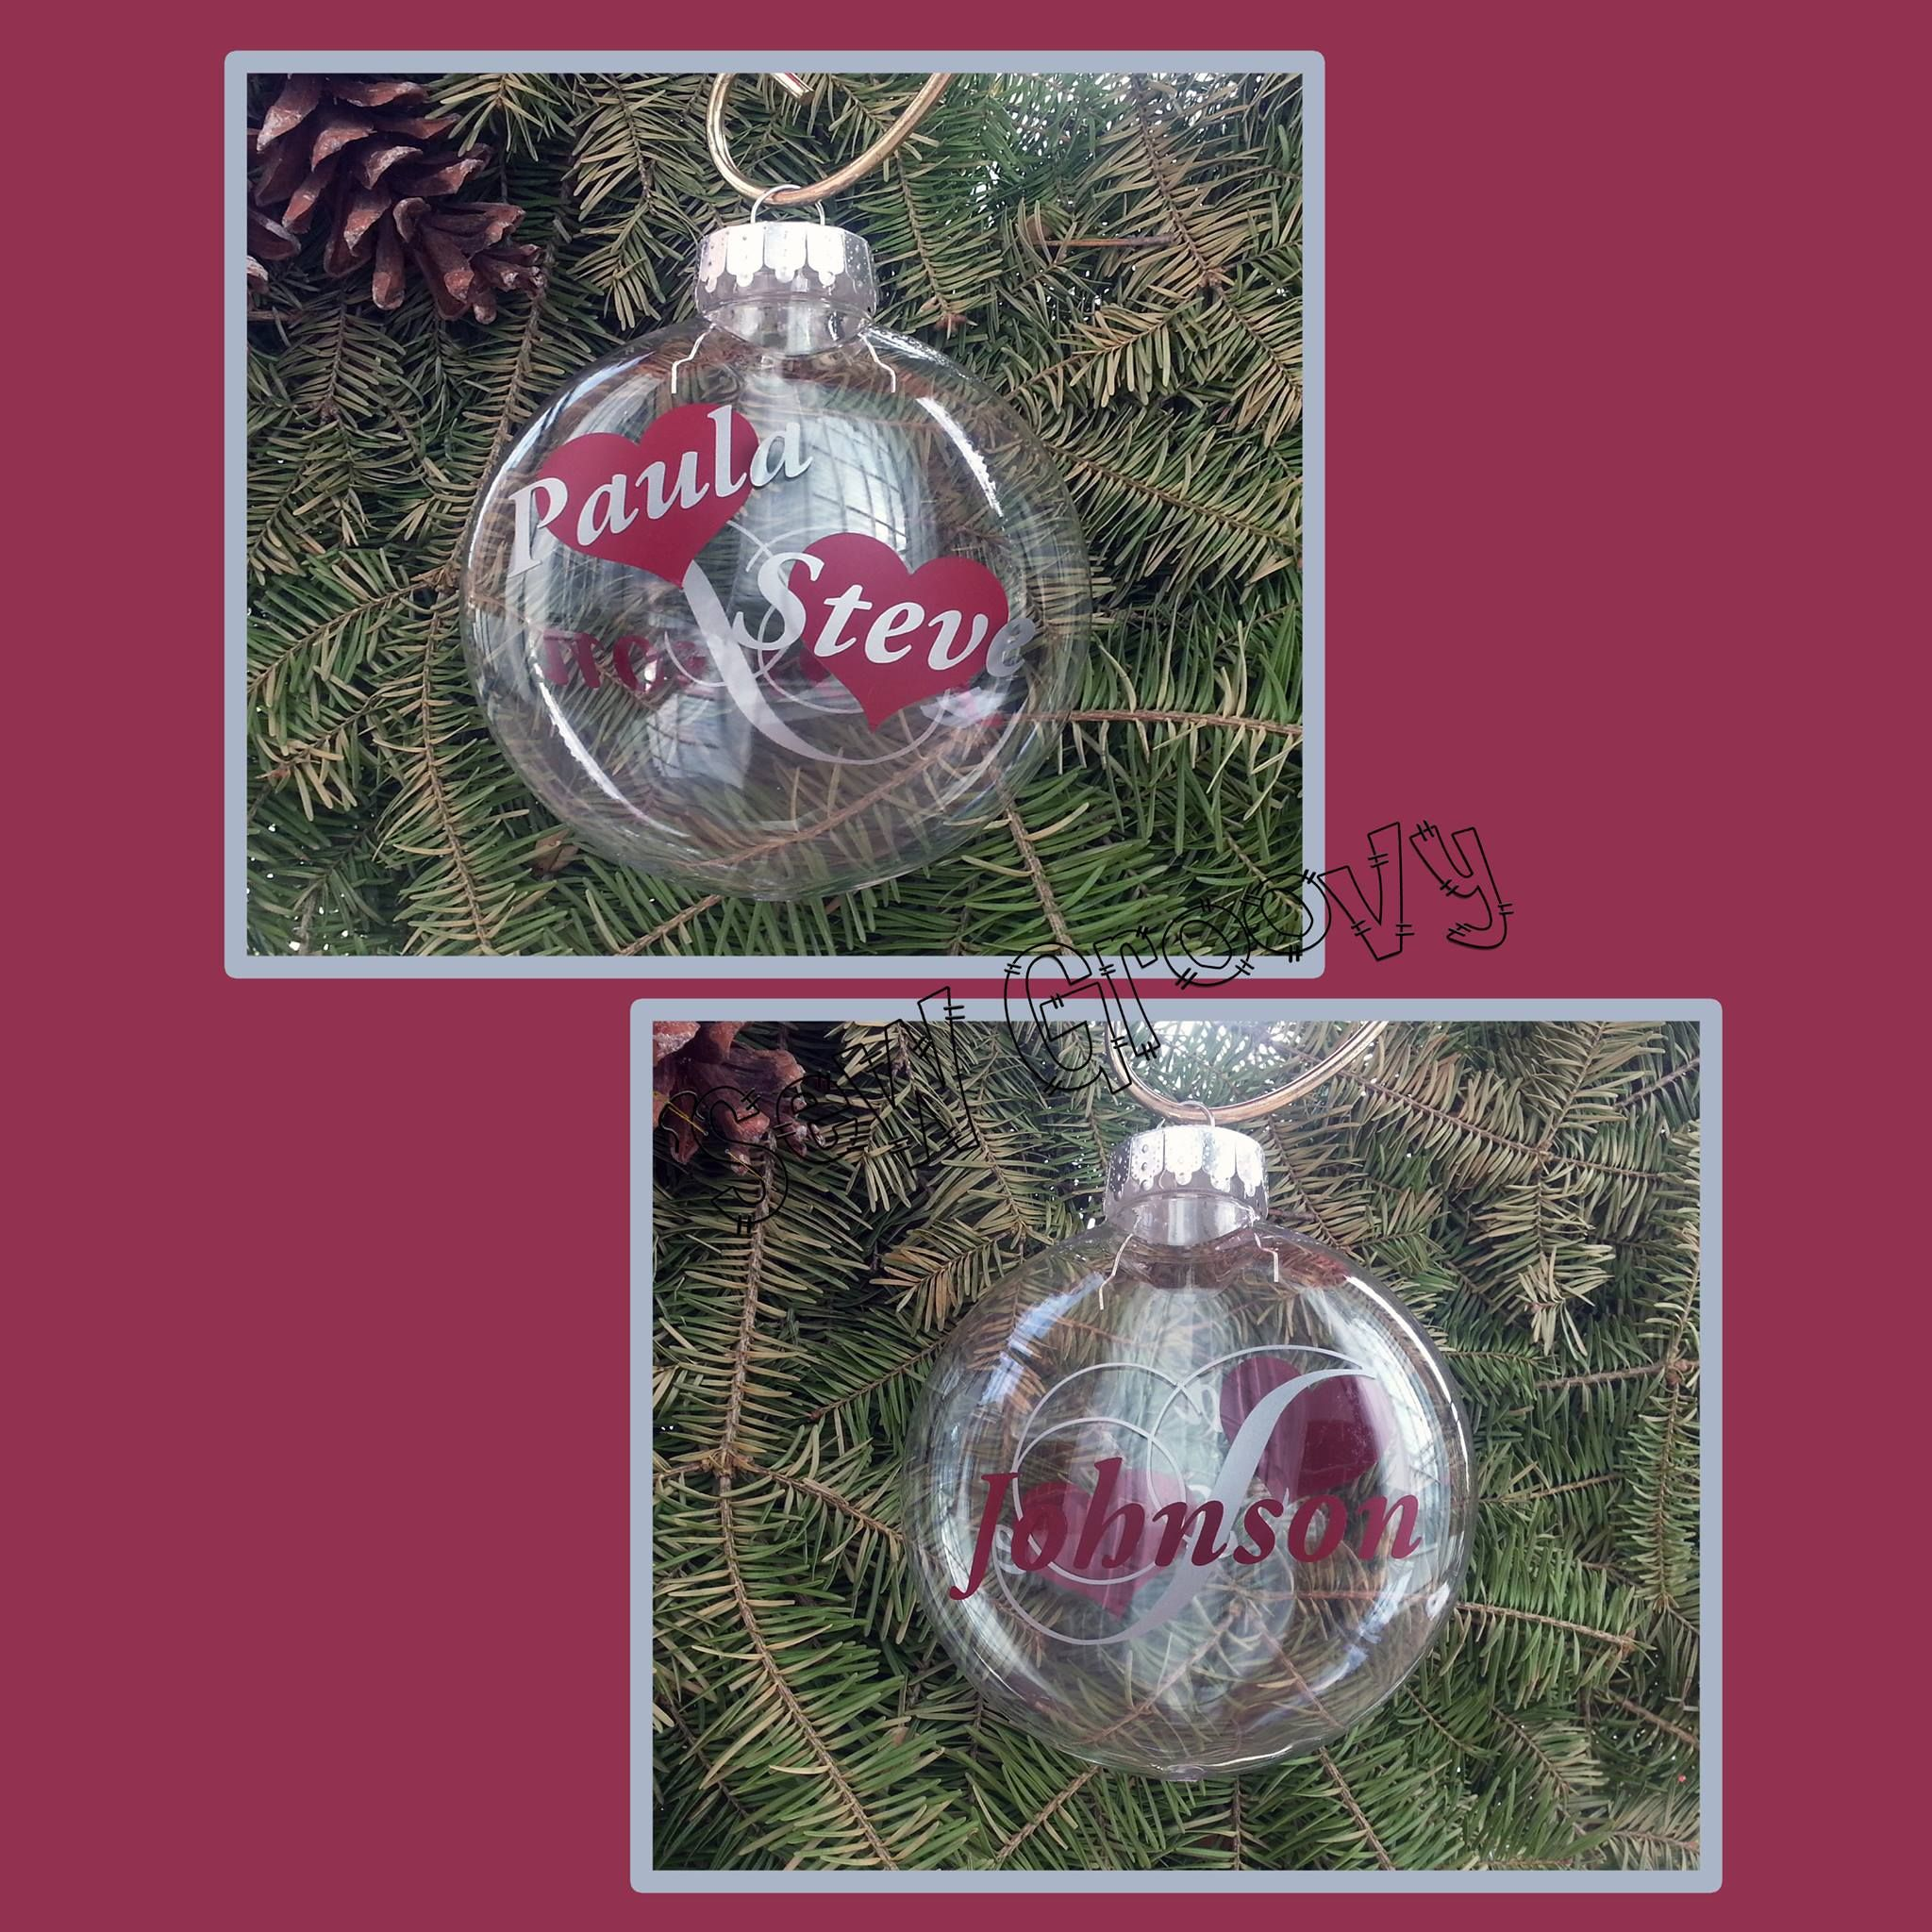 Couples christmas ornaments - Christmas Ornaments Personalized With Any Names Perfect For Couples Wedding Gifts Or To